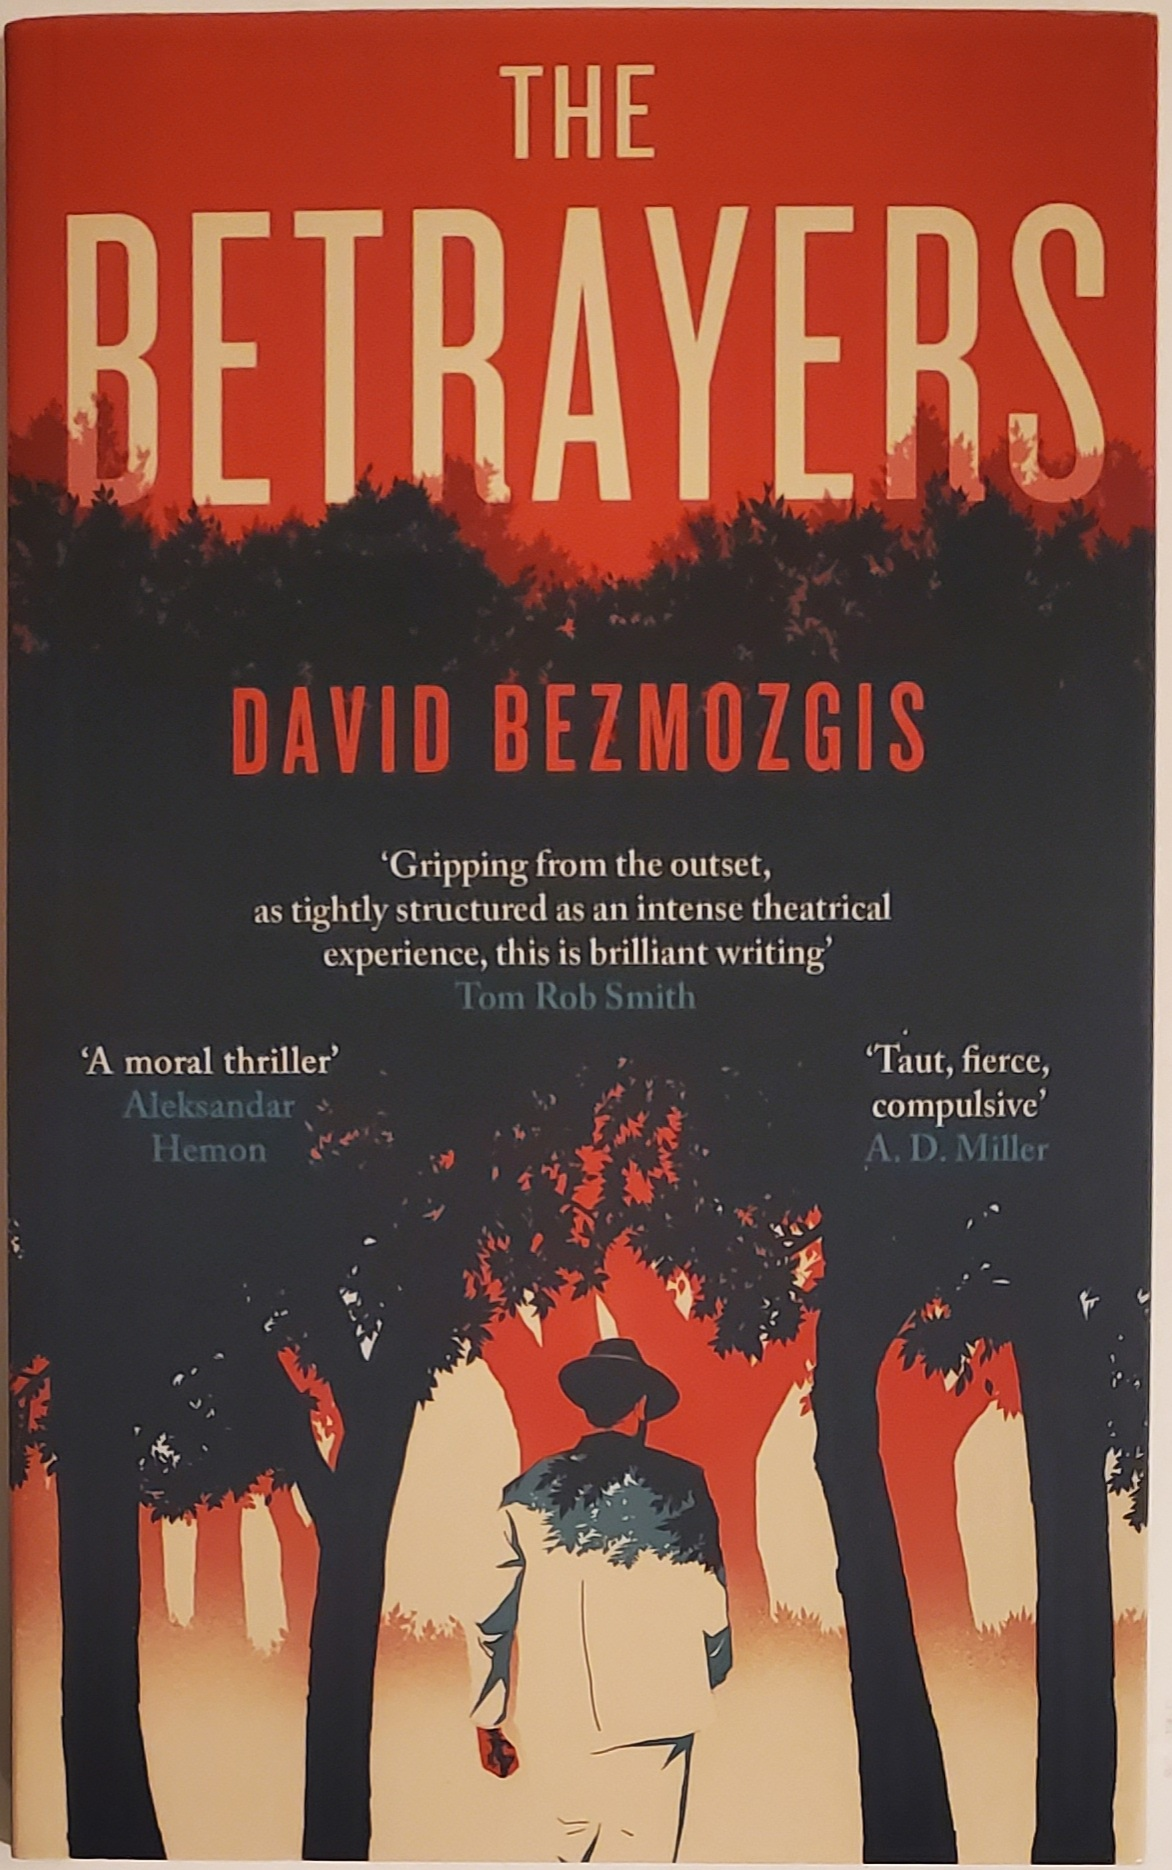 THE BETRAYERS. David Bezmozgis.